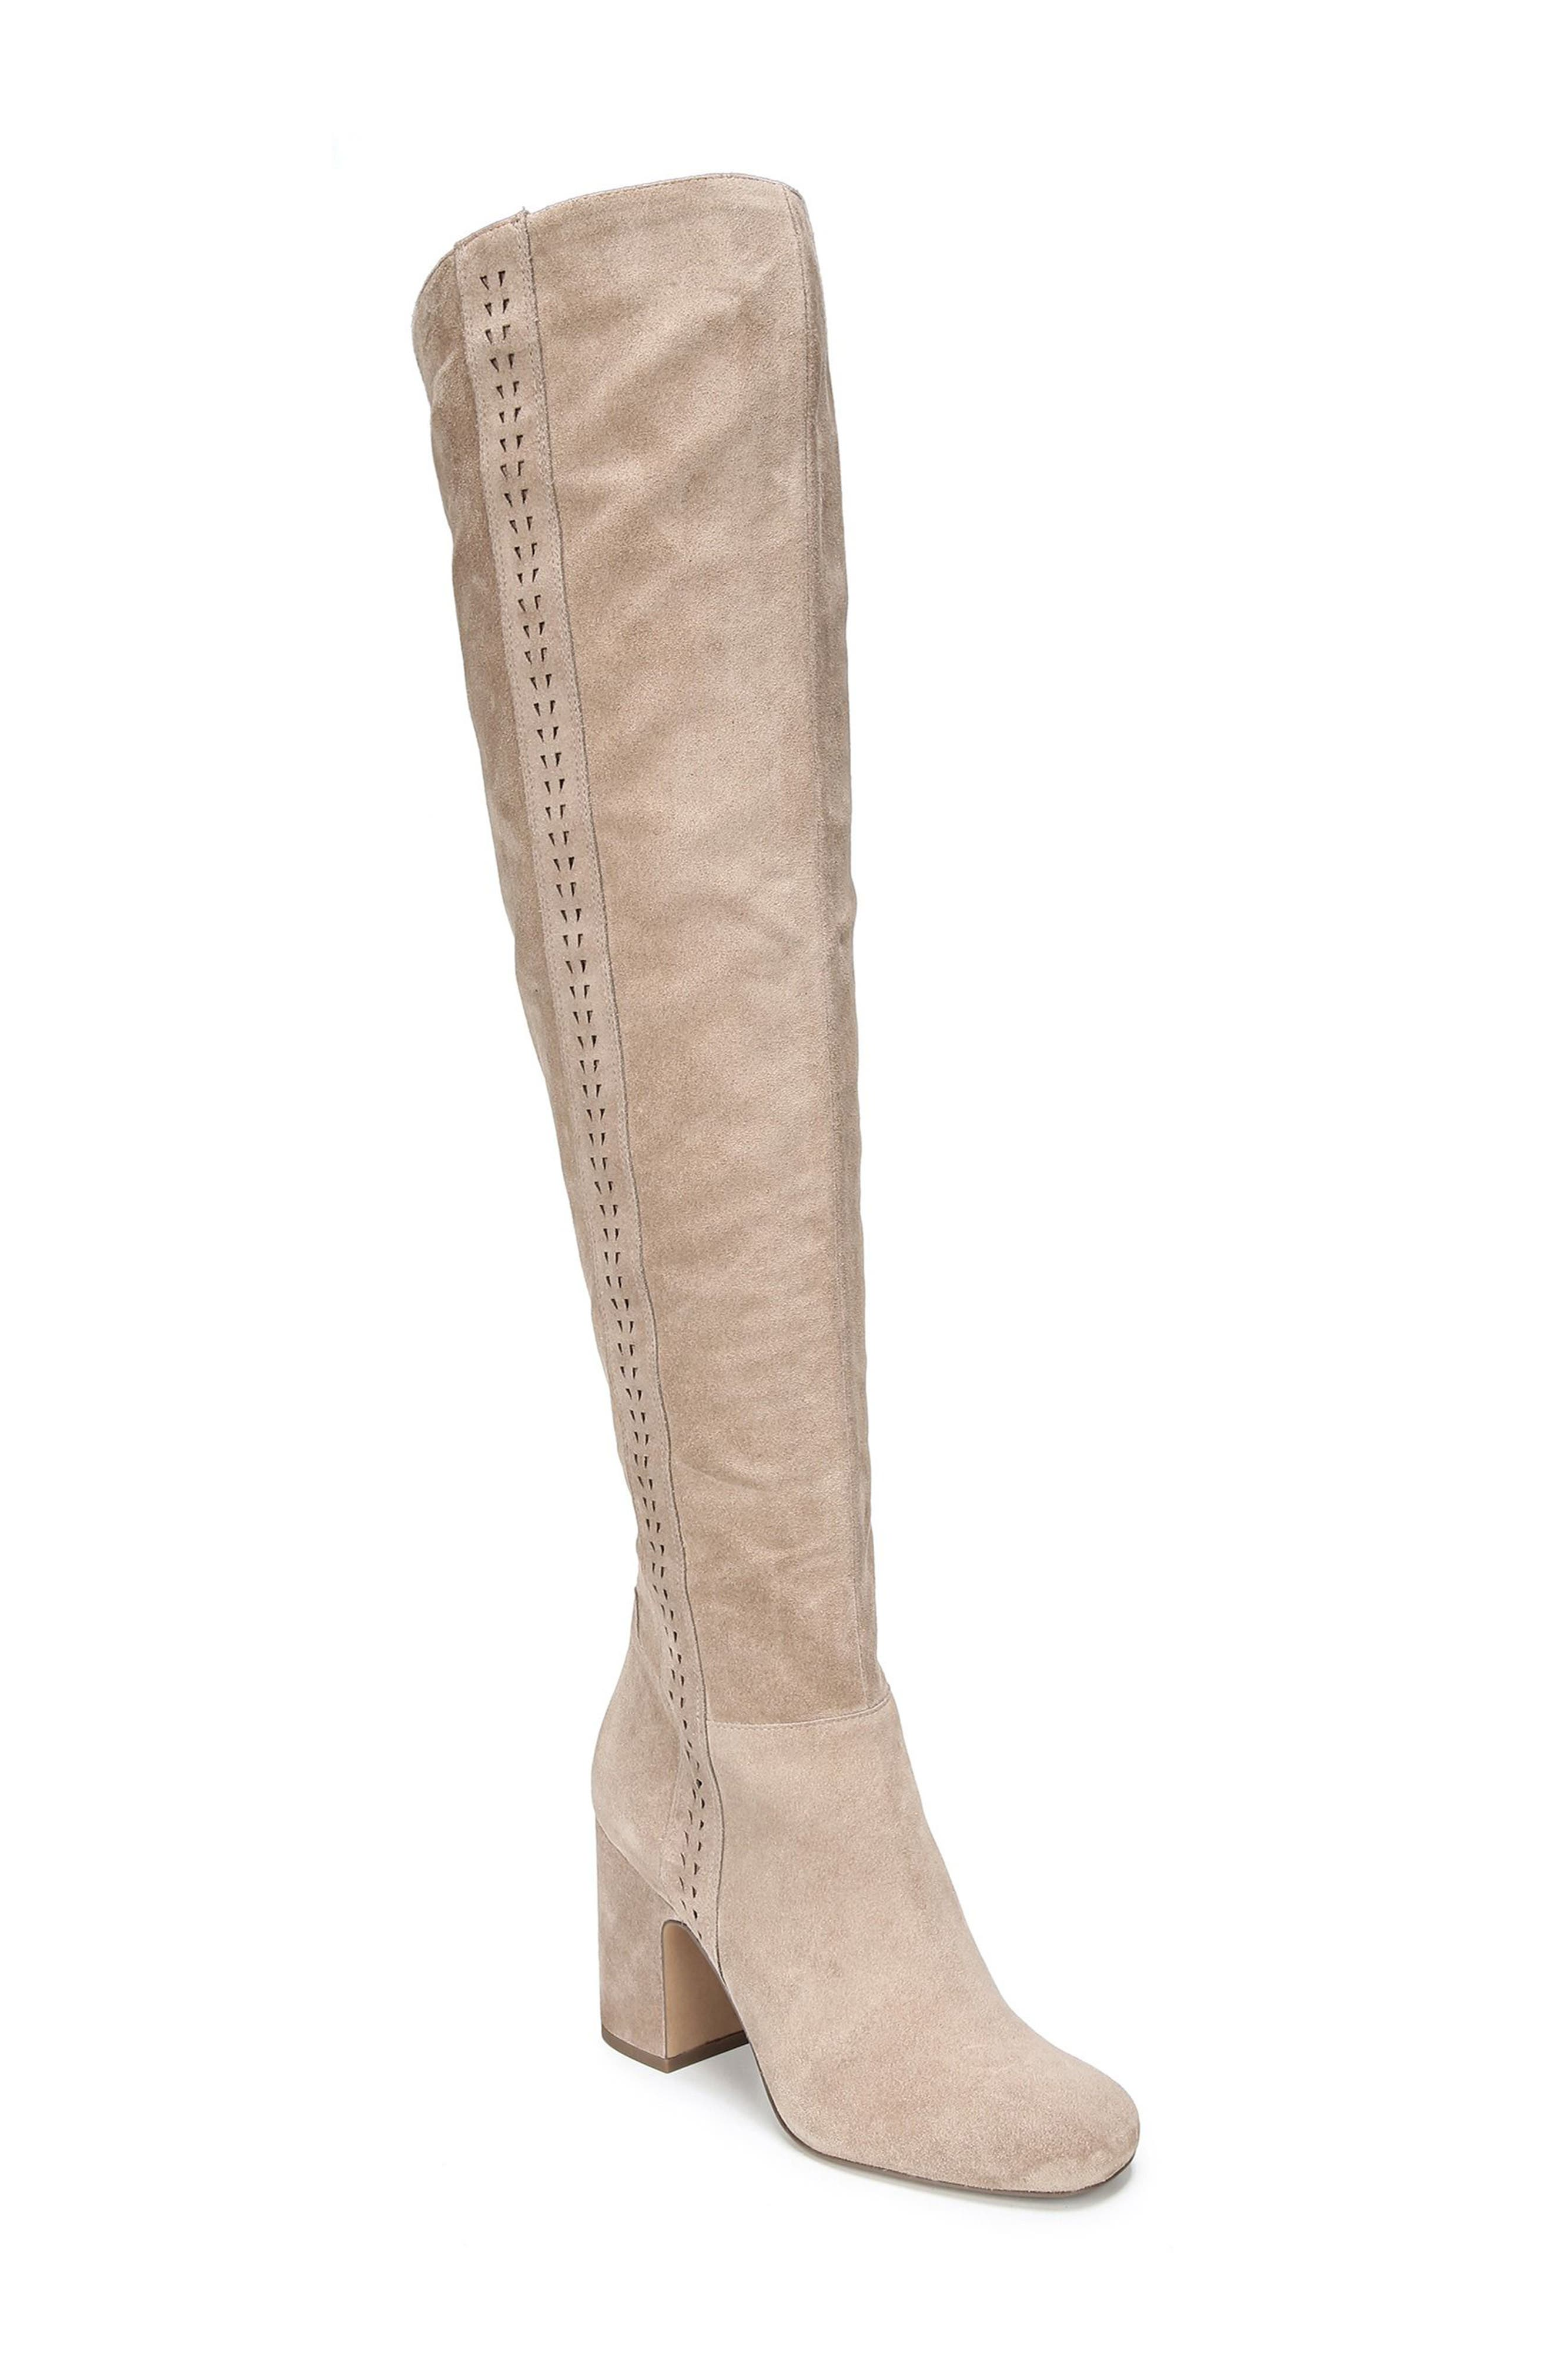 Alternate Image 1 Selected - SARTO by Franco Sarto Laurel Over the Knee Boot (Women)